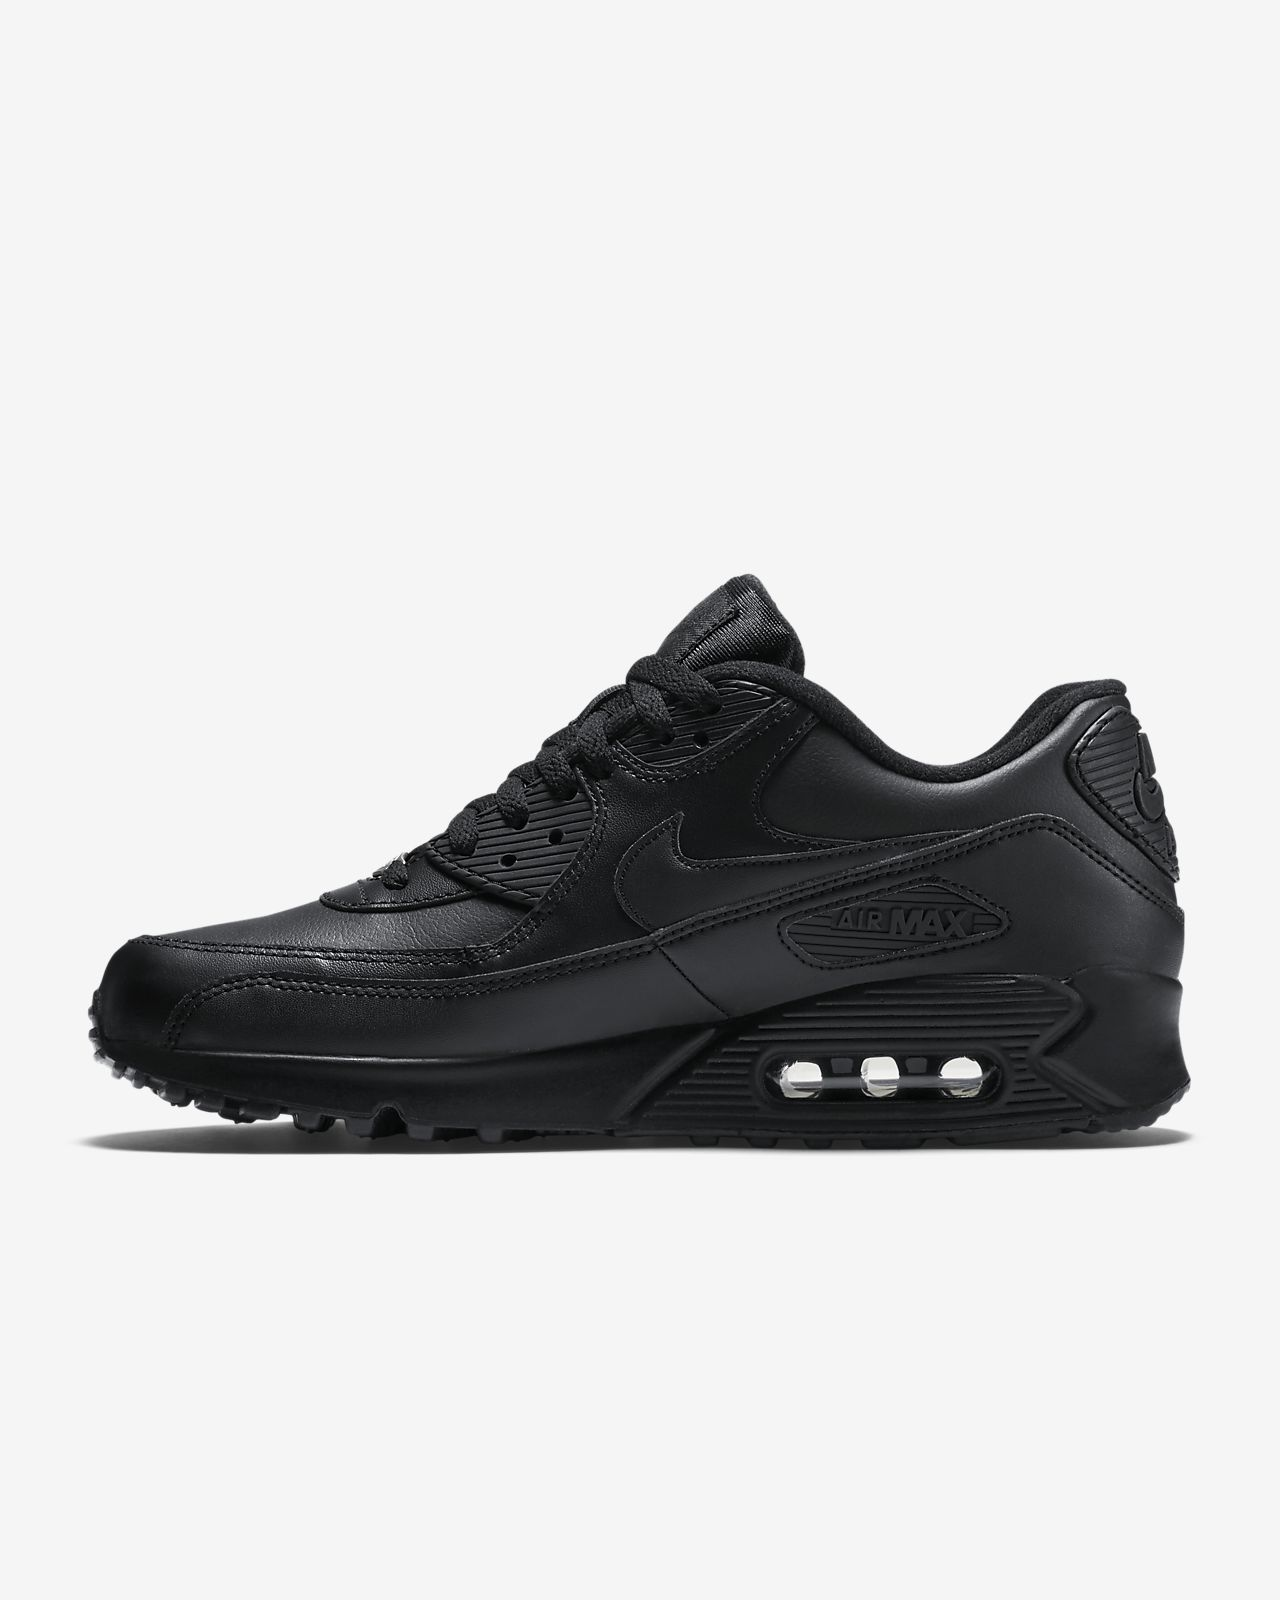 Vente chaussures homme Nike Air Max 90 Leather 302519 001